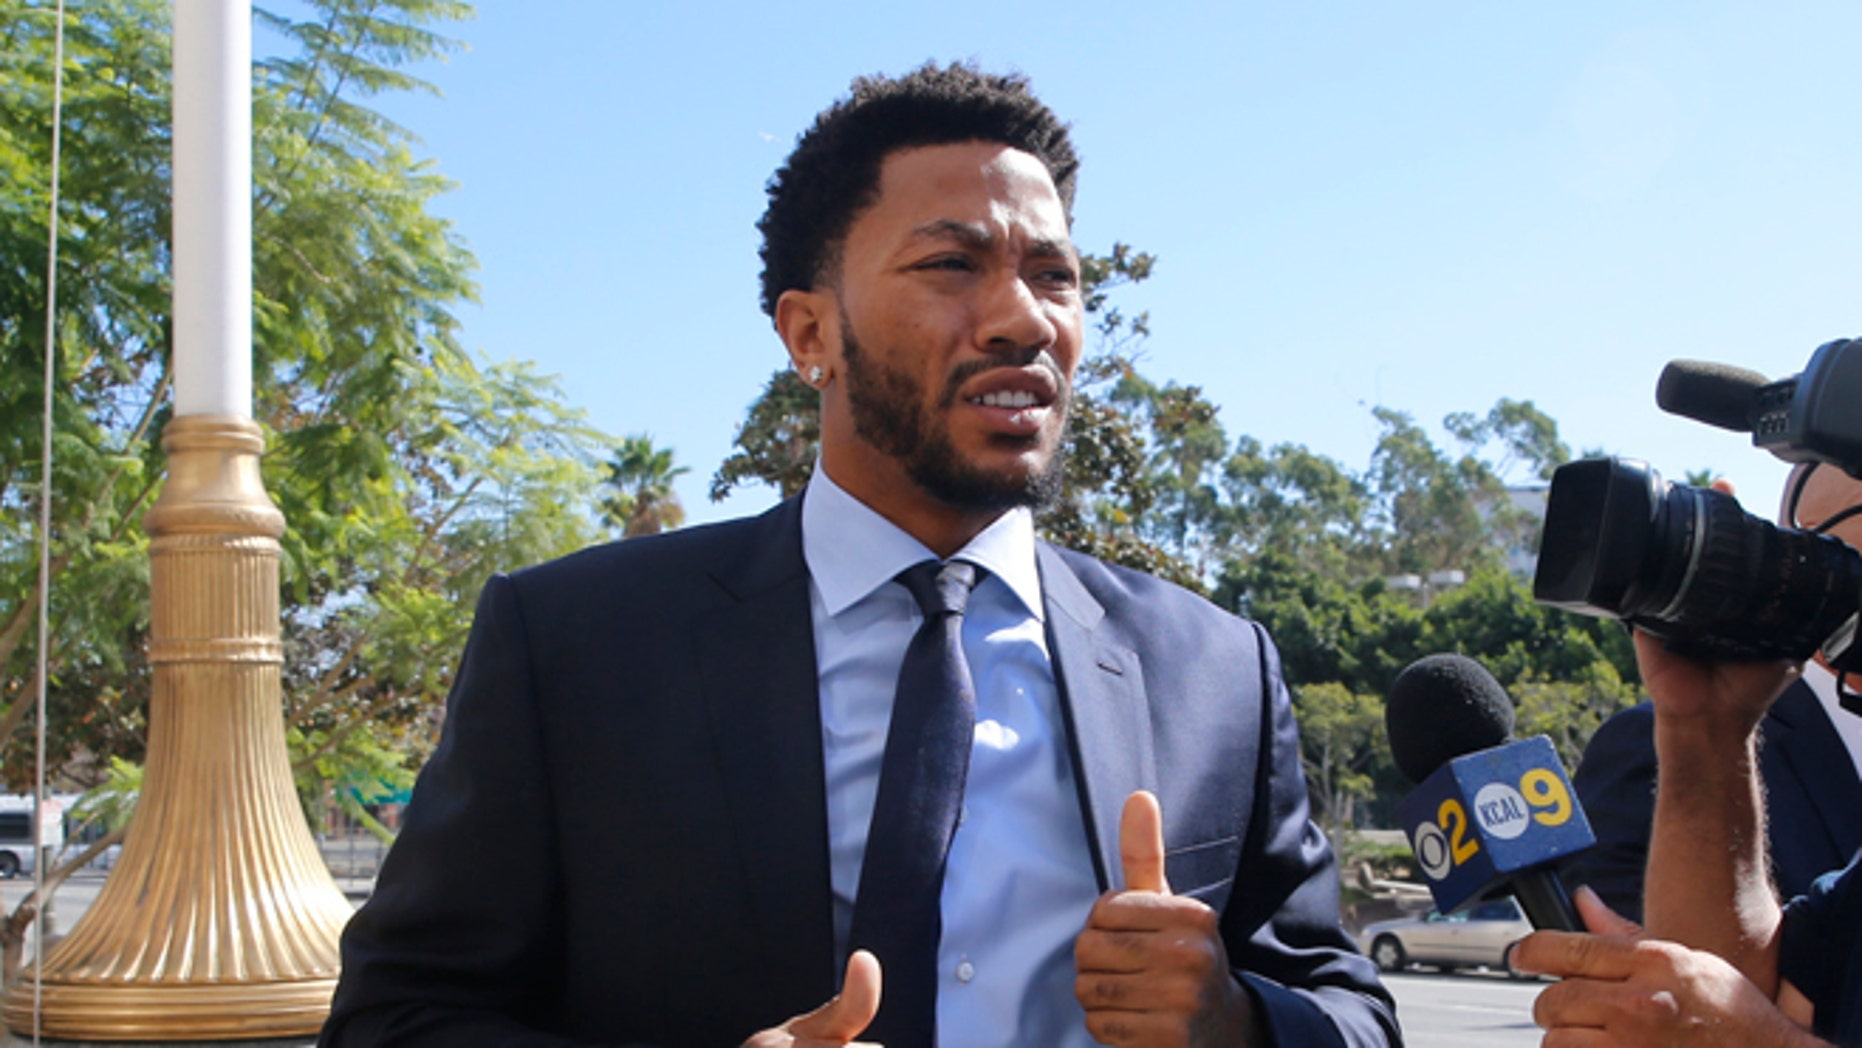 New York Knicks basketball player Derrick Rose.